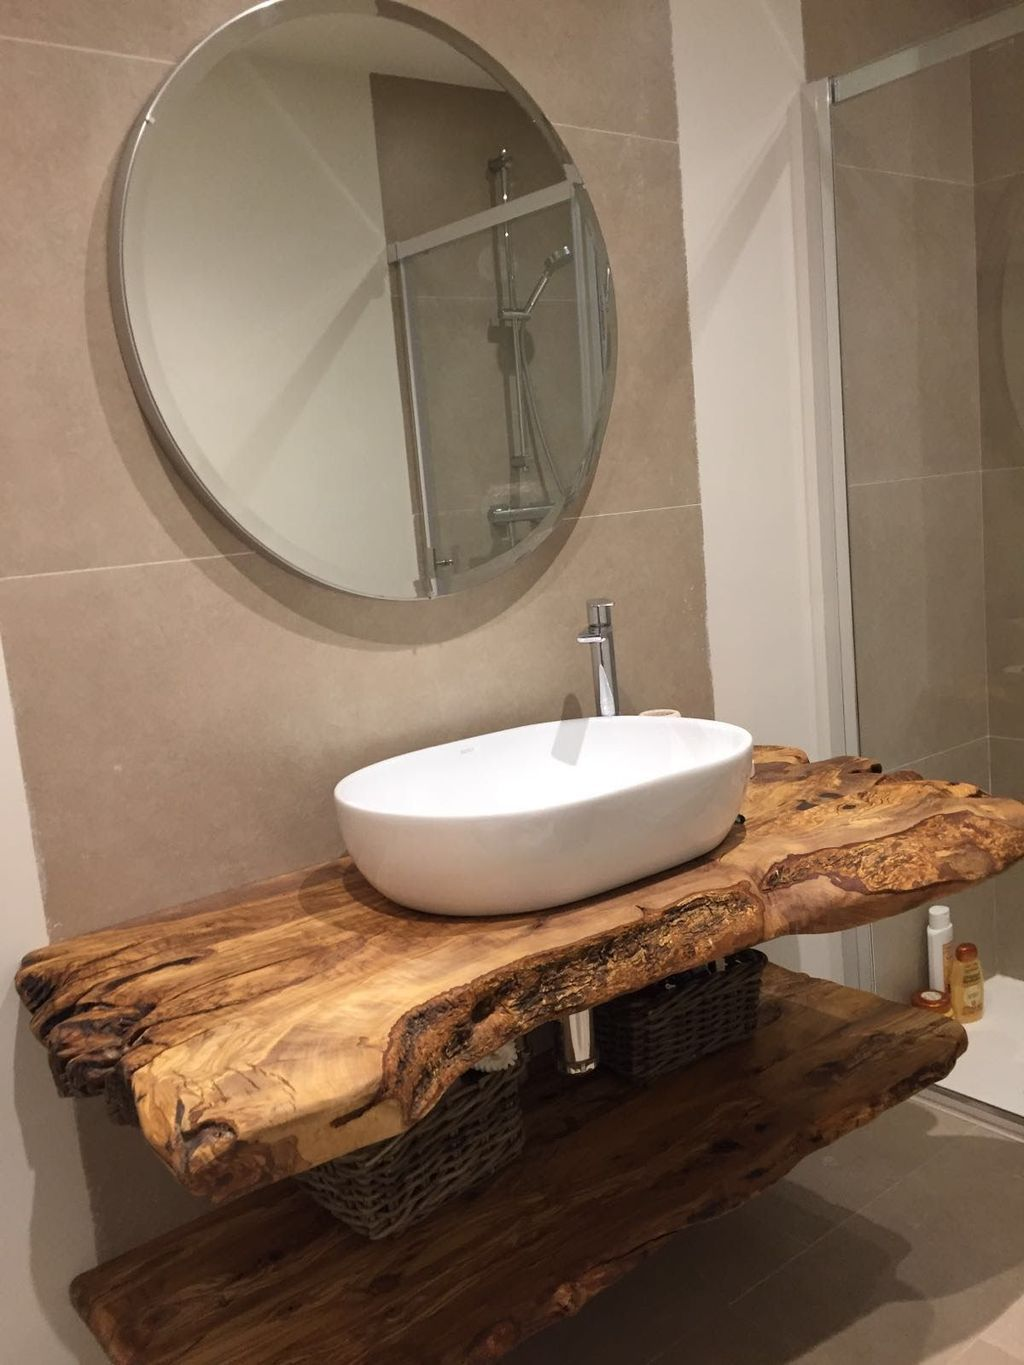 44 The Best Rustic Small Bathroom Ideas With Wooden Decor Bathroom Vanity Vanities Homedeco Cottage Bathroom Small Bathroom Remodel Designs Wooden Bathroom